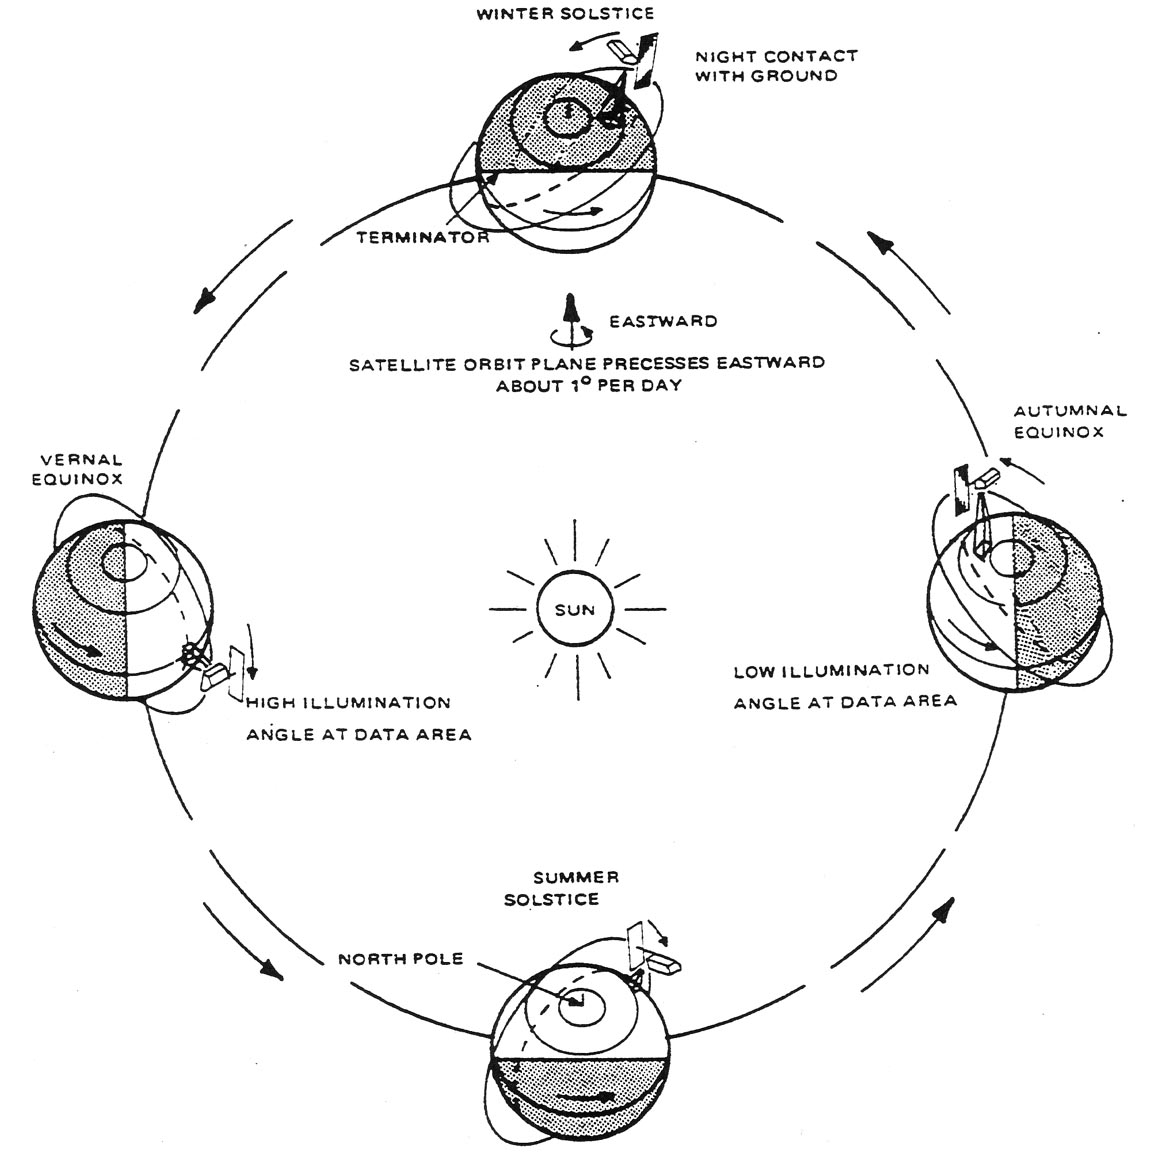 Sun Synchronous Orbit